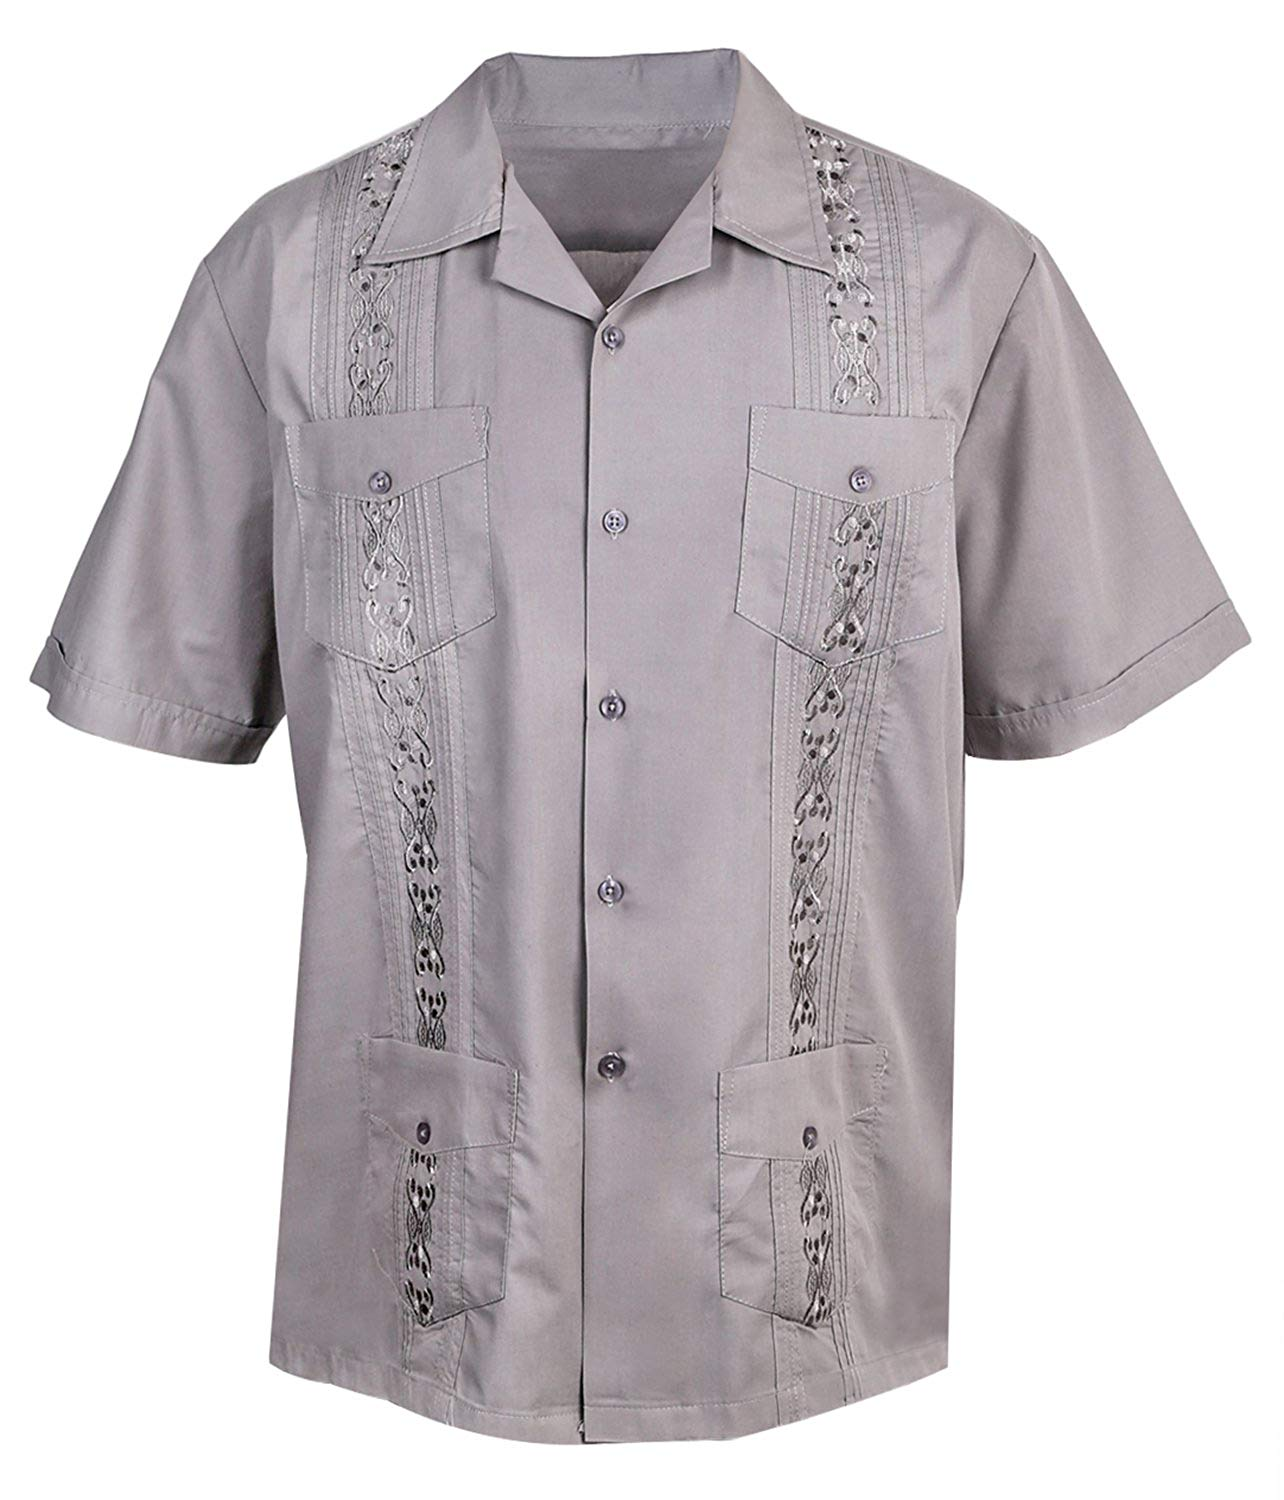 Urban Fox Mens Guayabera Shirts for Men | Short-Sleeve Shirt | Cuban | Wedding | Barong | Beach